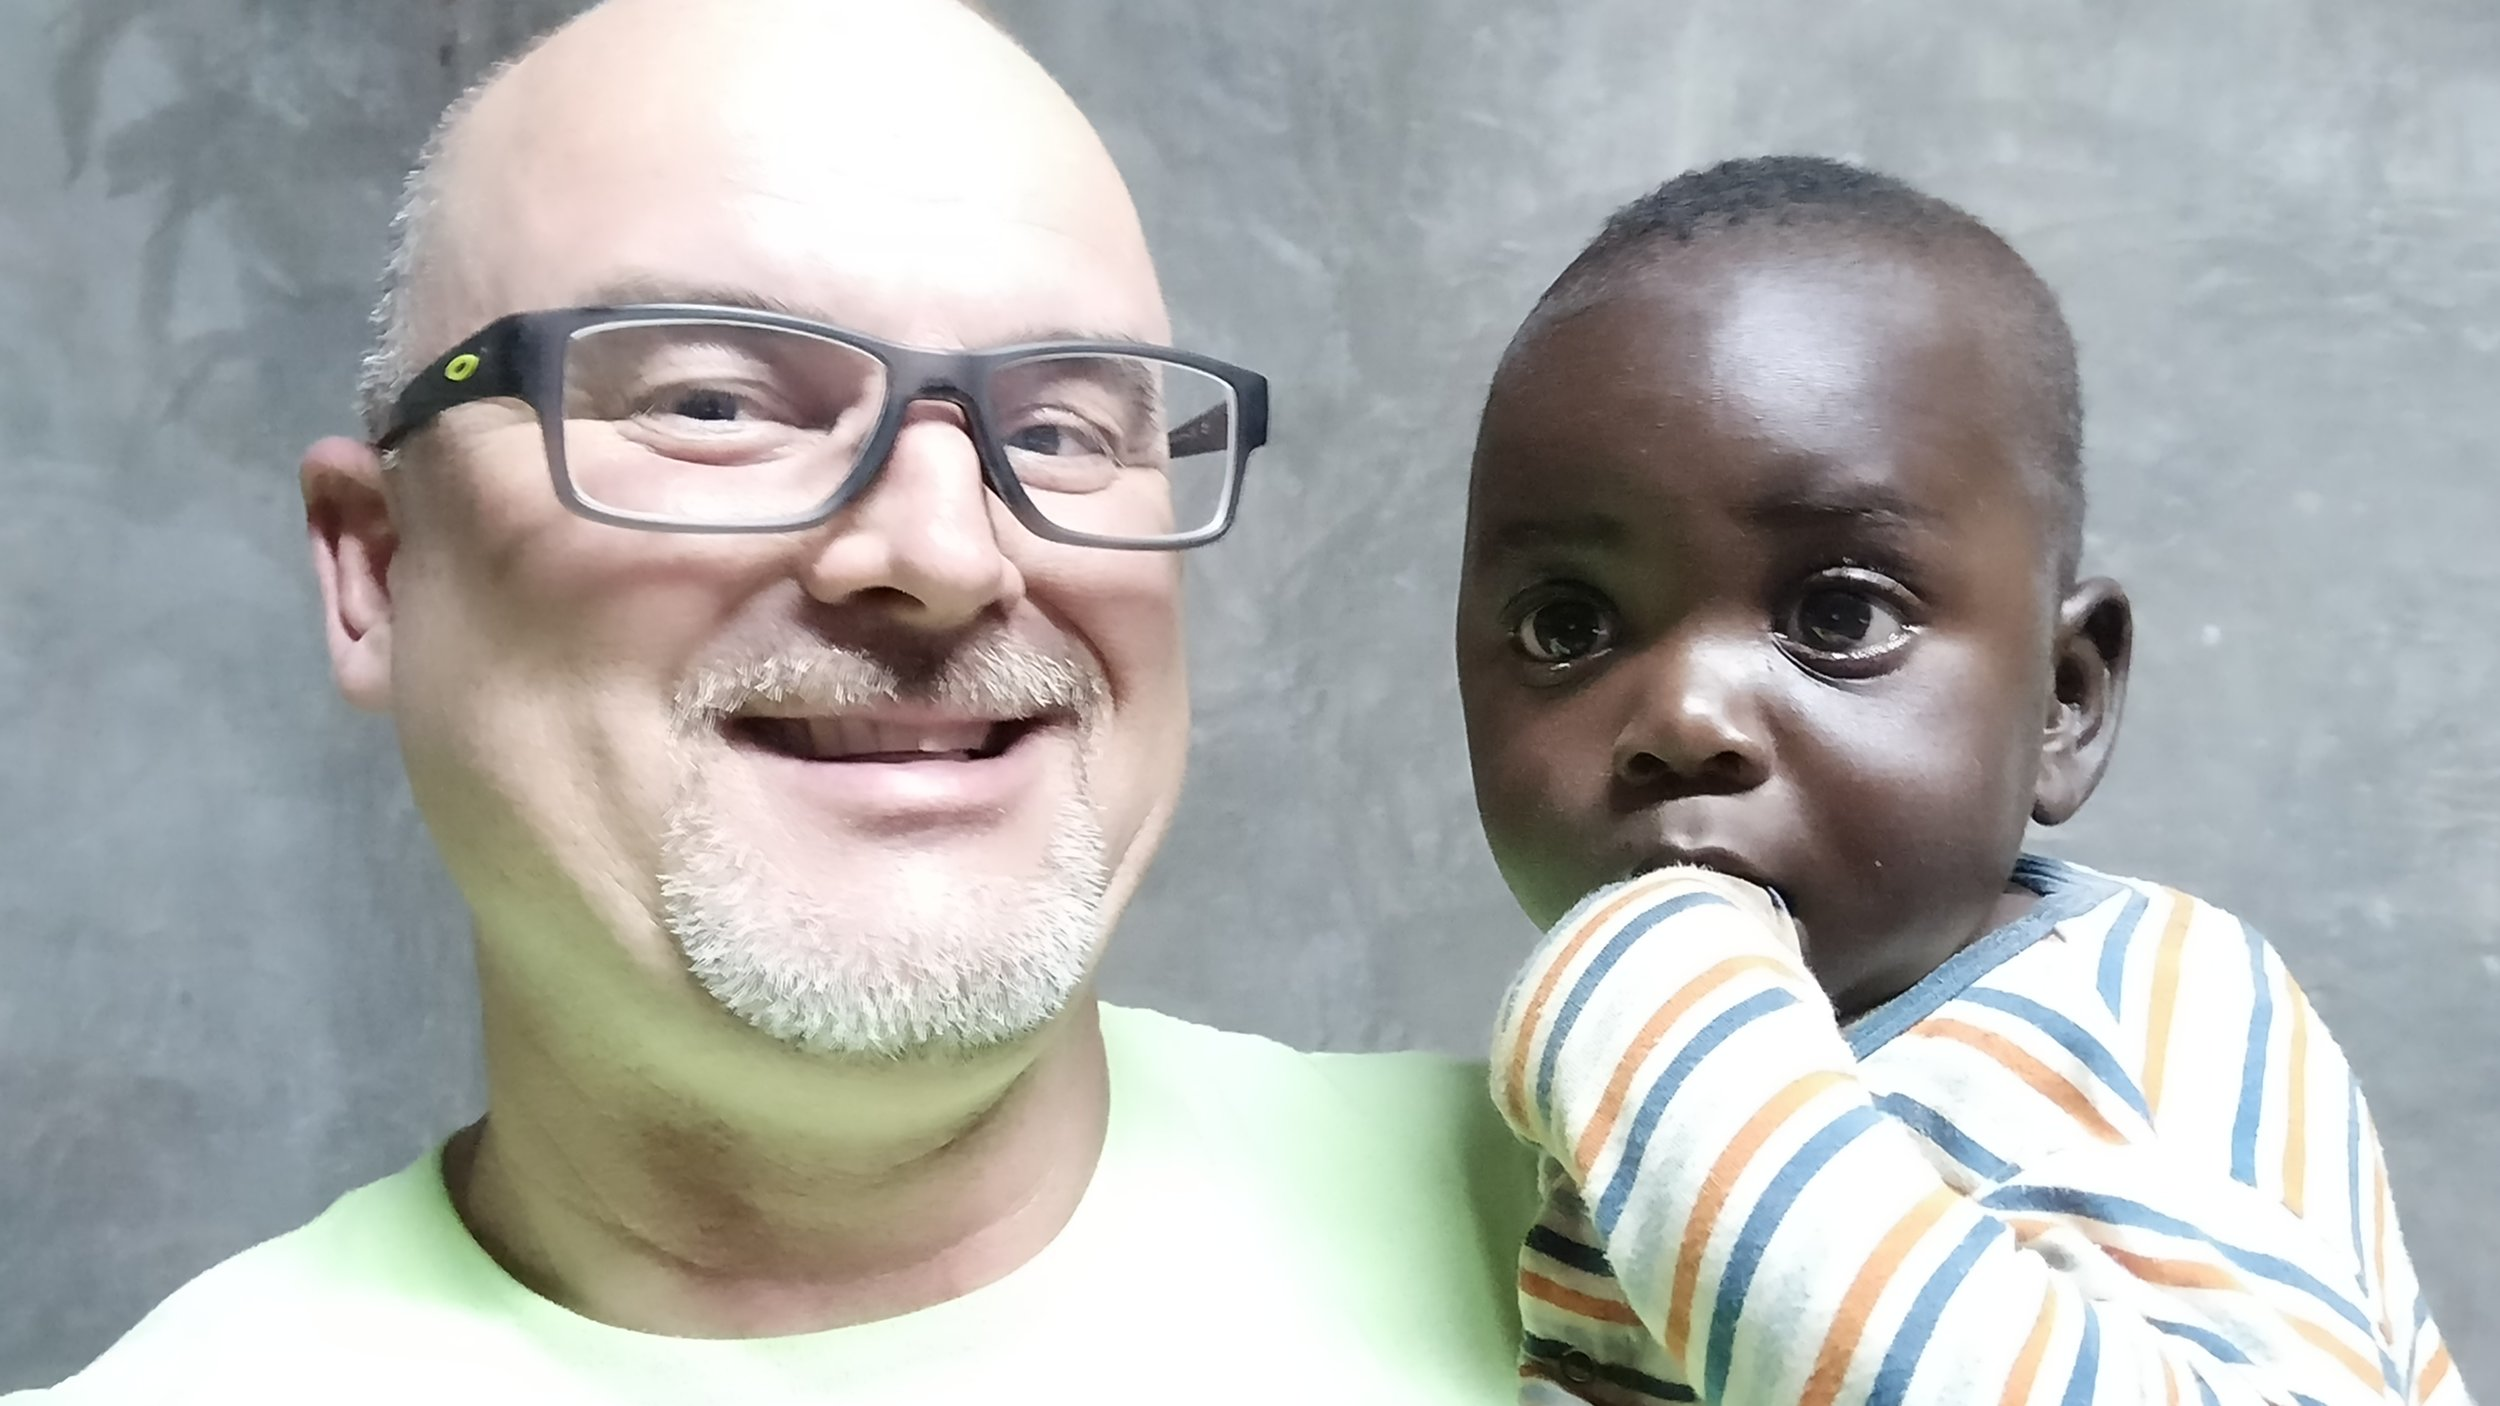 Me and our youngest member of Mercy Home, baby Zeke.